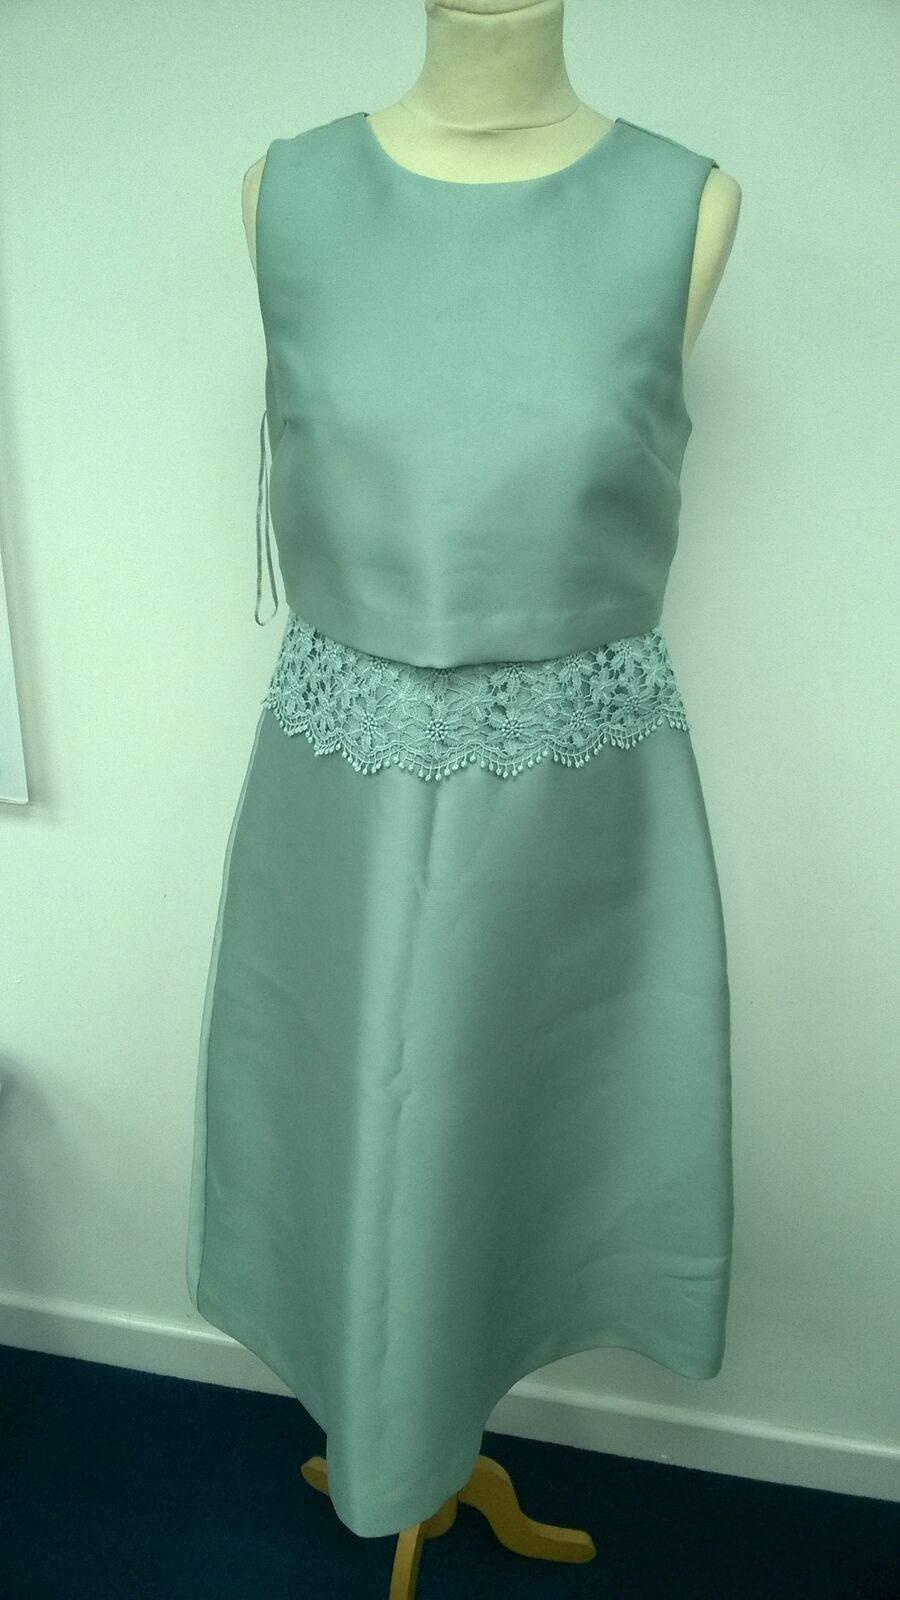 Ladies Oasis Size 10 Bridesmaids Prom Evening Dress bluee Green